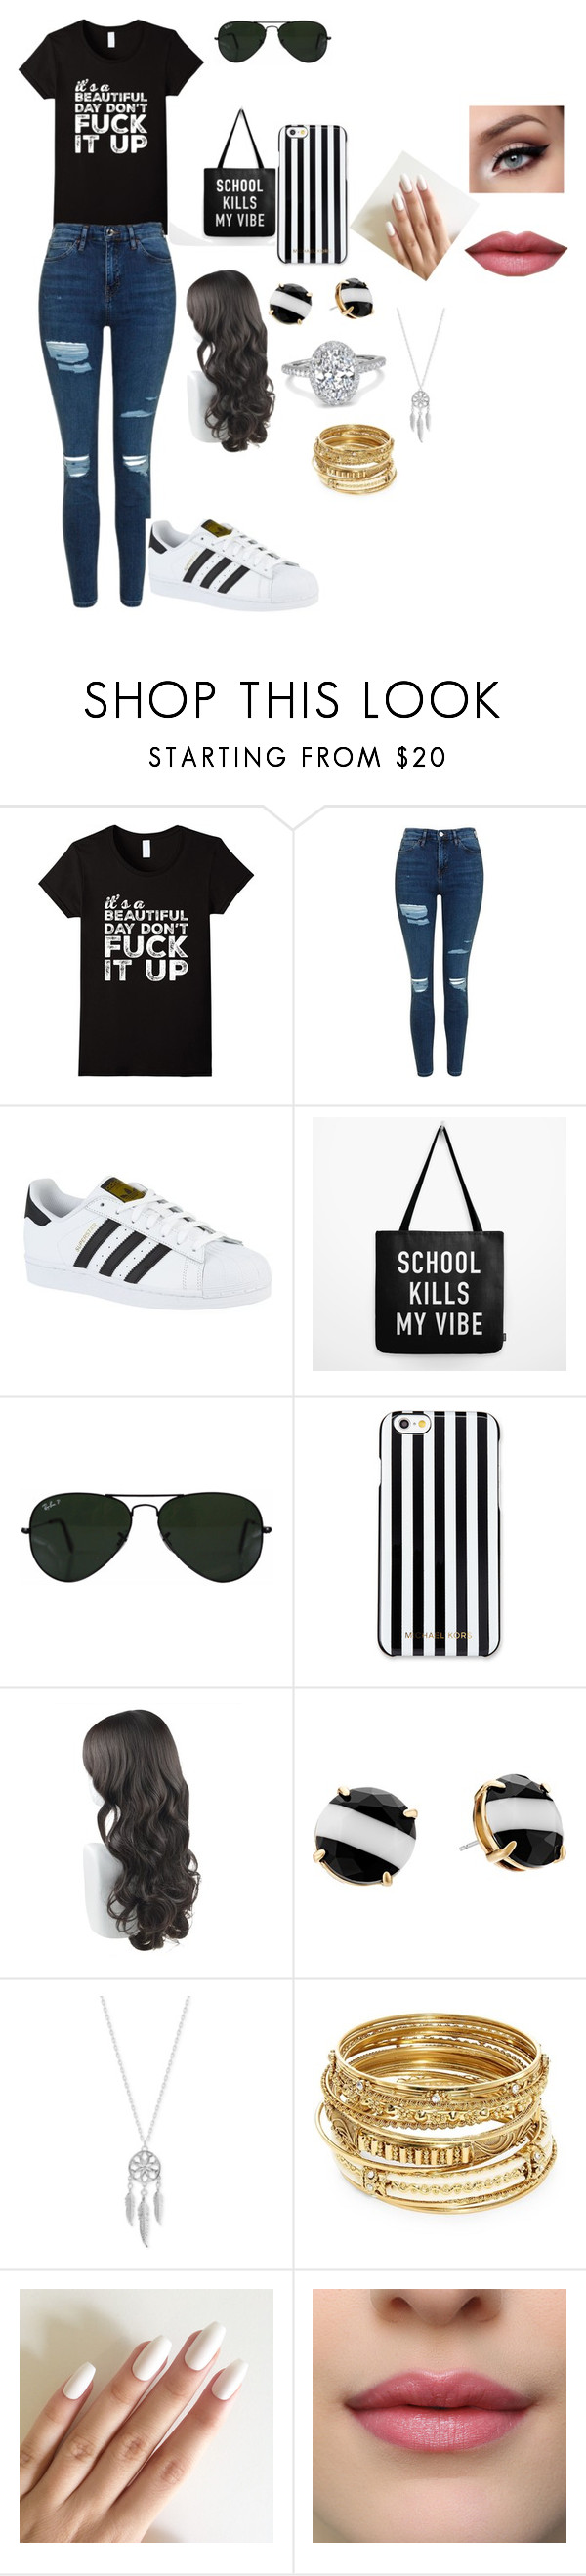 """""""just in a little hurry"""" by bettyboop2001 on Polyvore featuring Topshop, adidas, Ray-Ban, MICHAEL Michael Kors, Kate Spade, Lucky Brand and ABS by Allen Schwartz"""